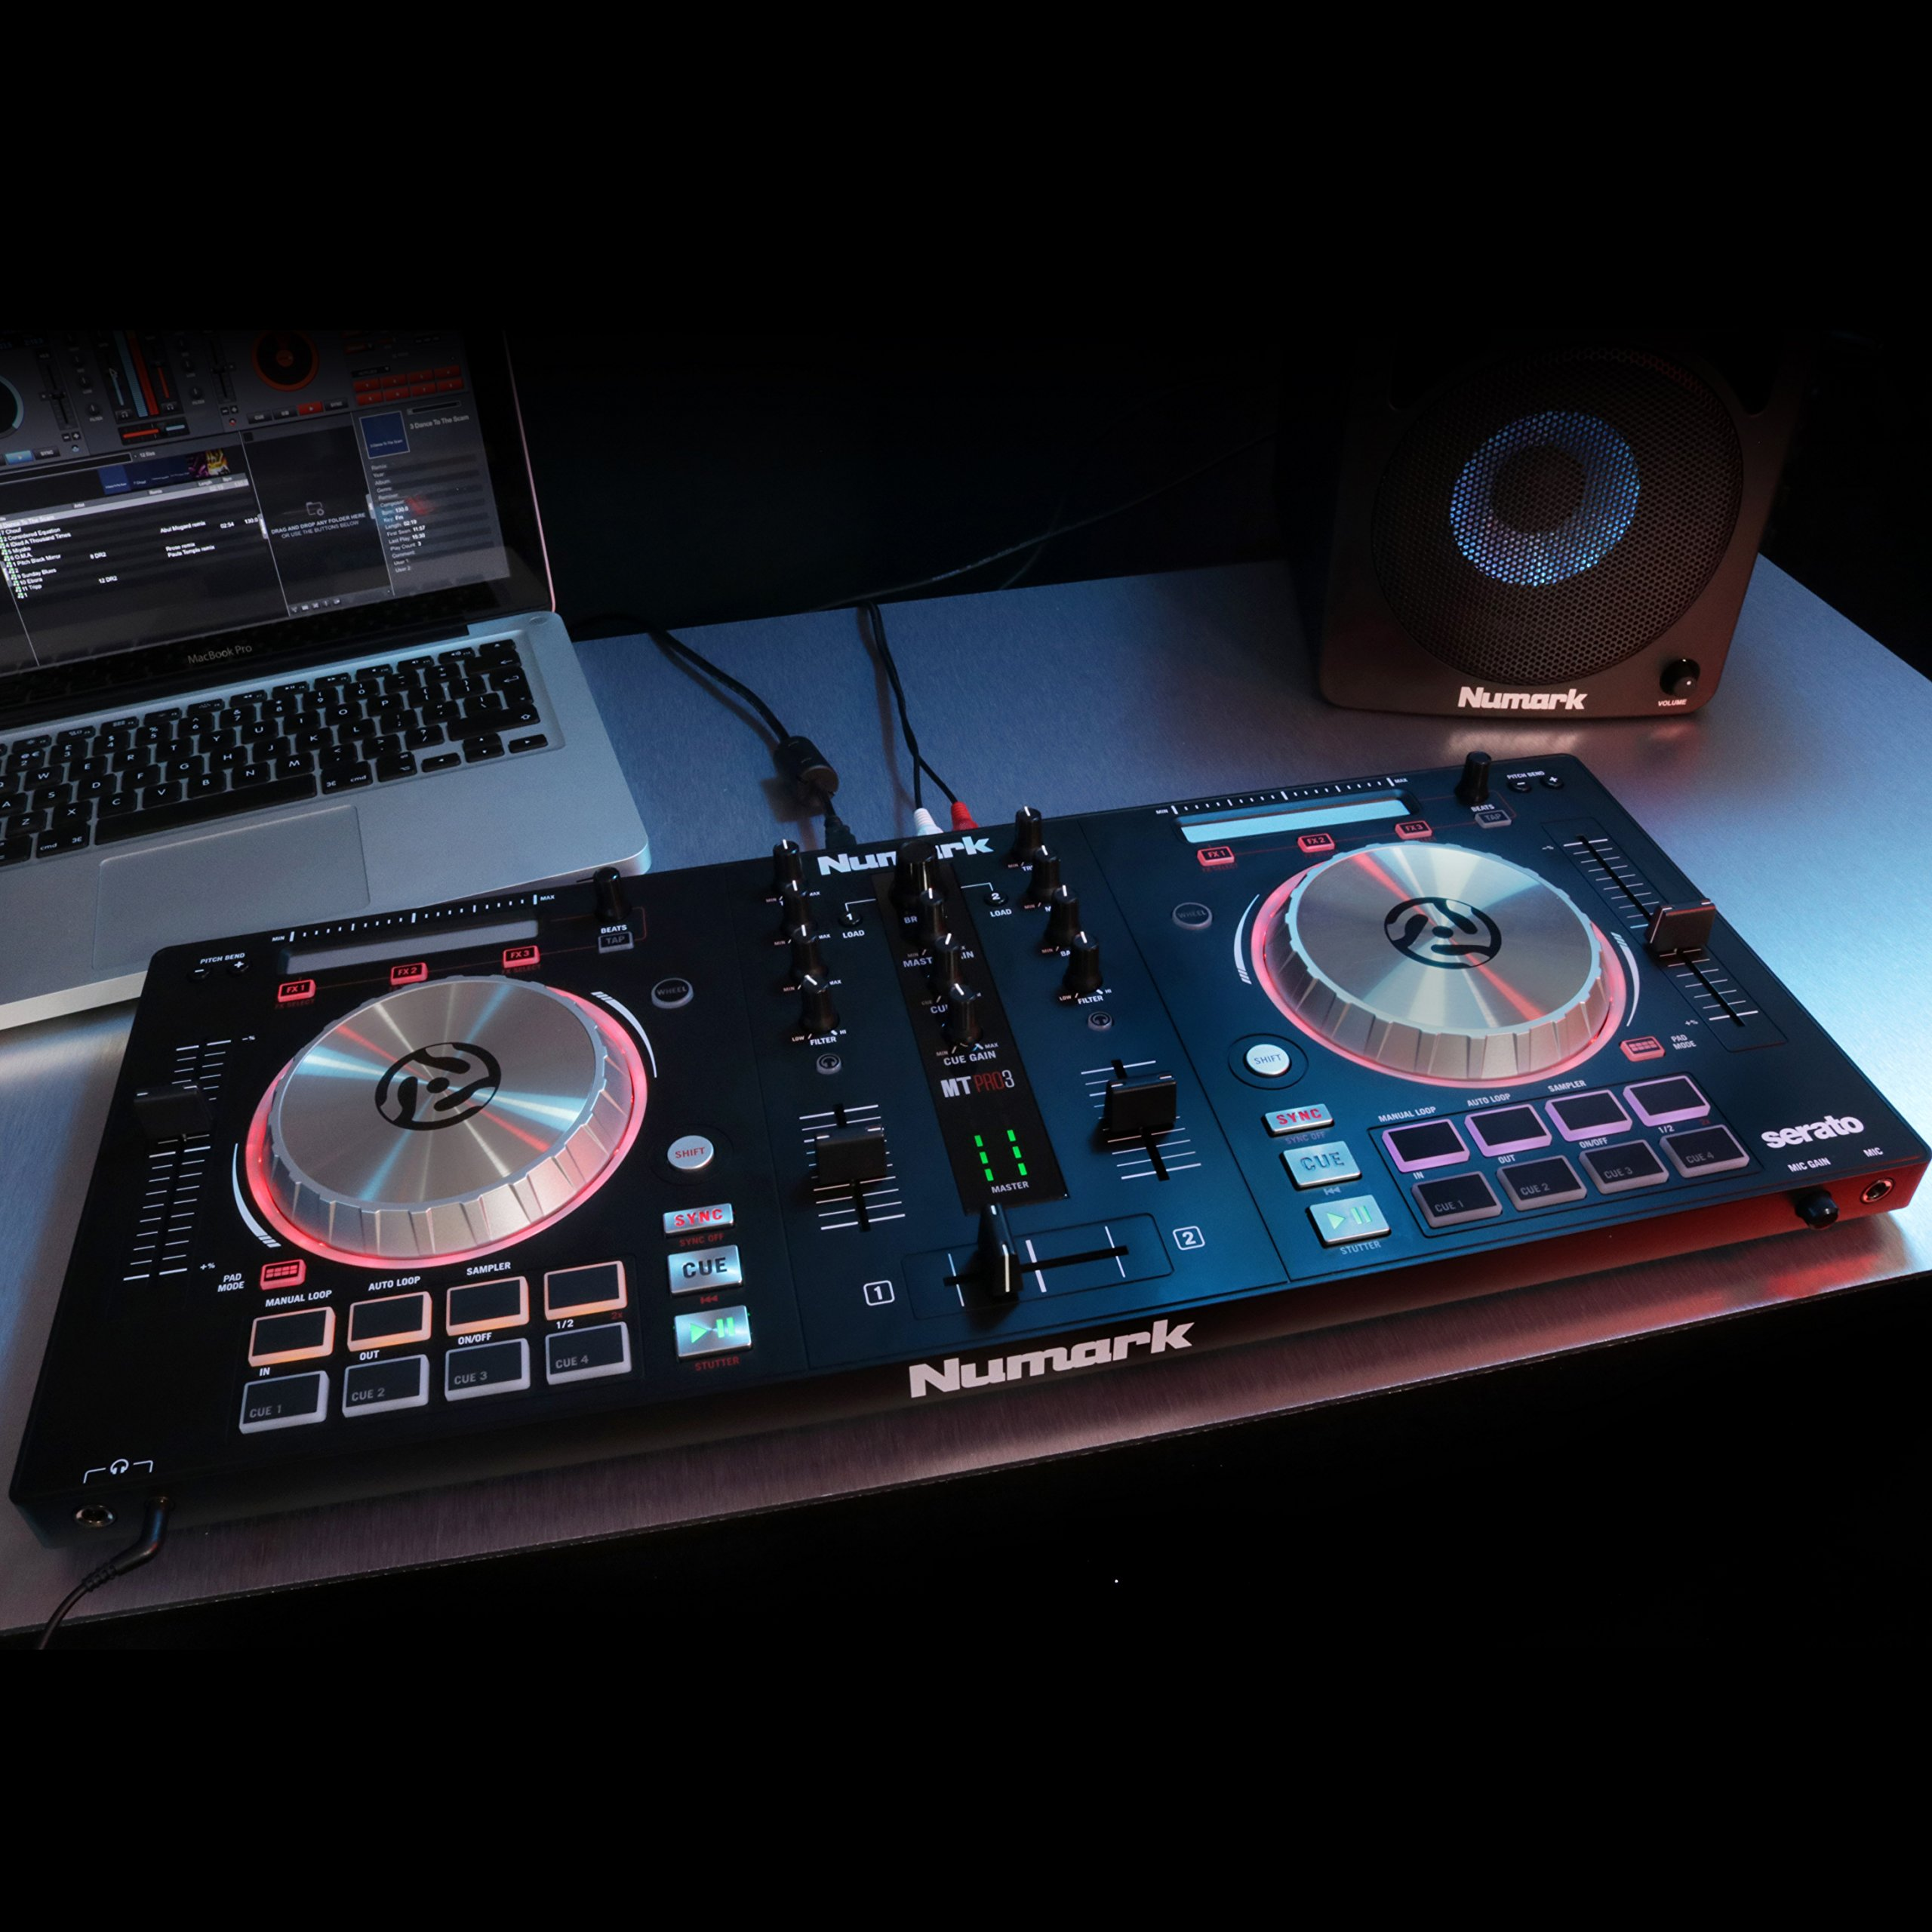 Numark Mixtrack Pro 3 | USB DJ Controller with Trigger Pads & Serato DJ Intro Download (Includes Built-In Sound Card) by Numark (Image #3)